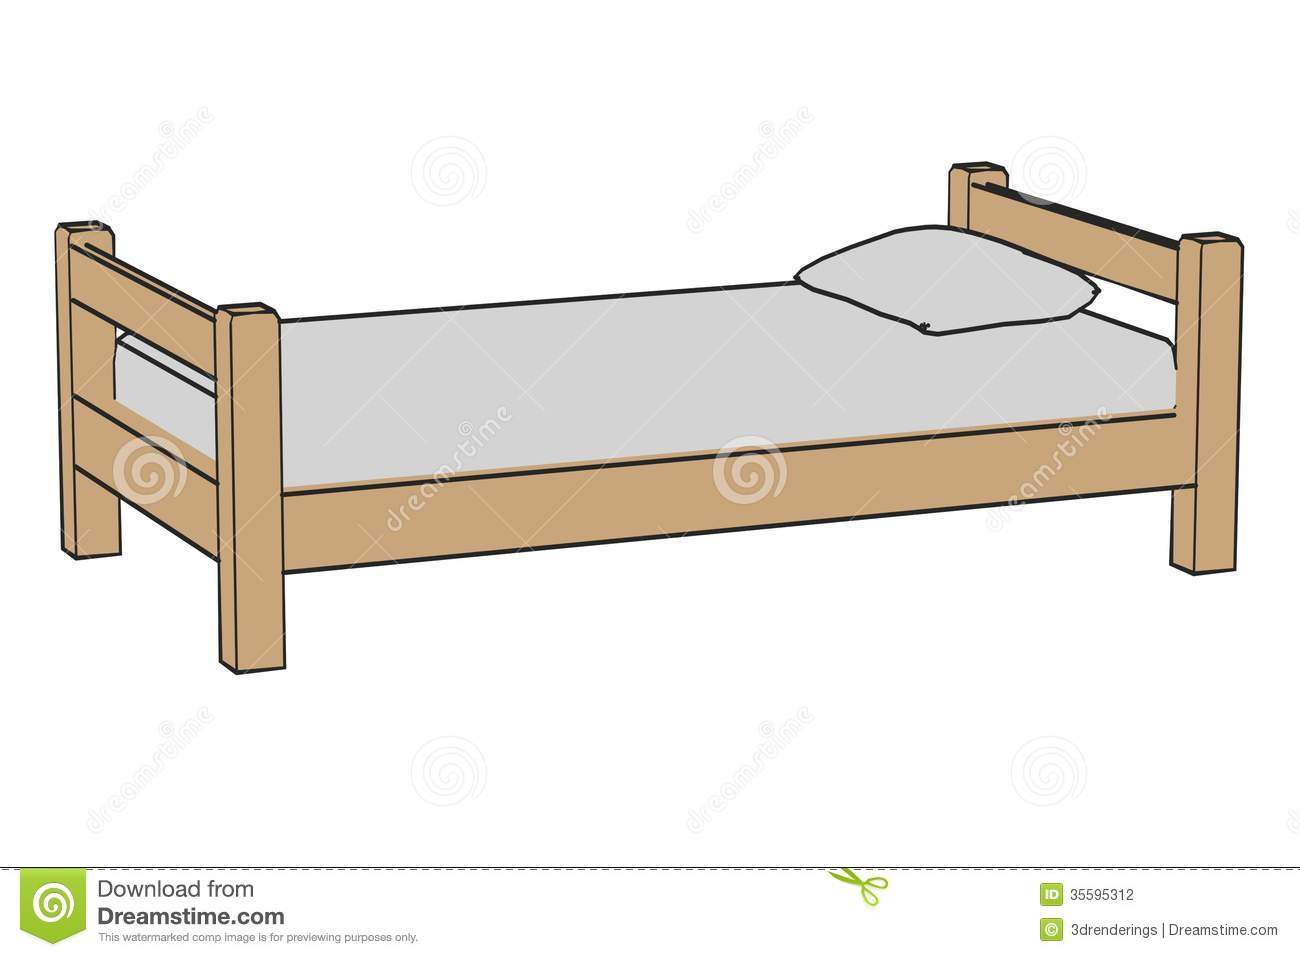 Royalty Free Stock Photo. Simple bed stock illustration  Image of child  hand  classic